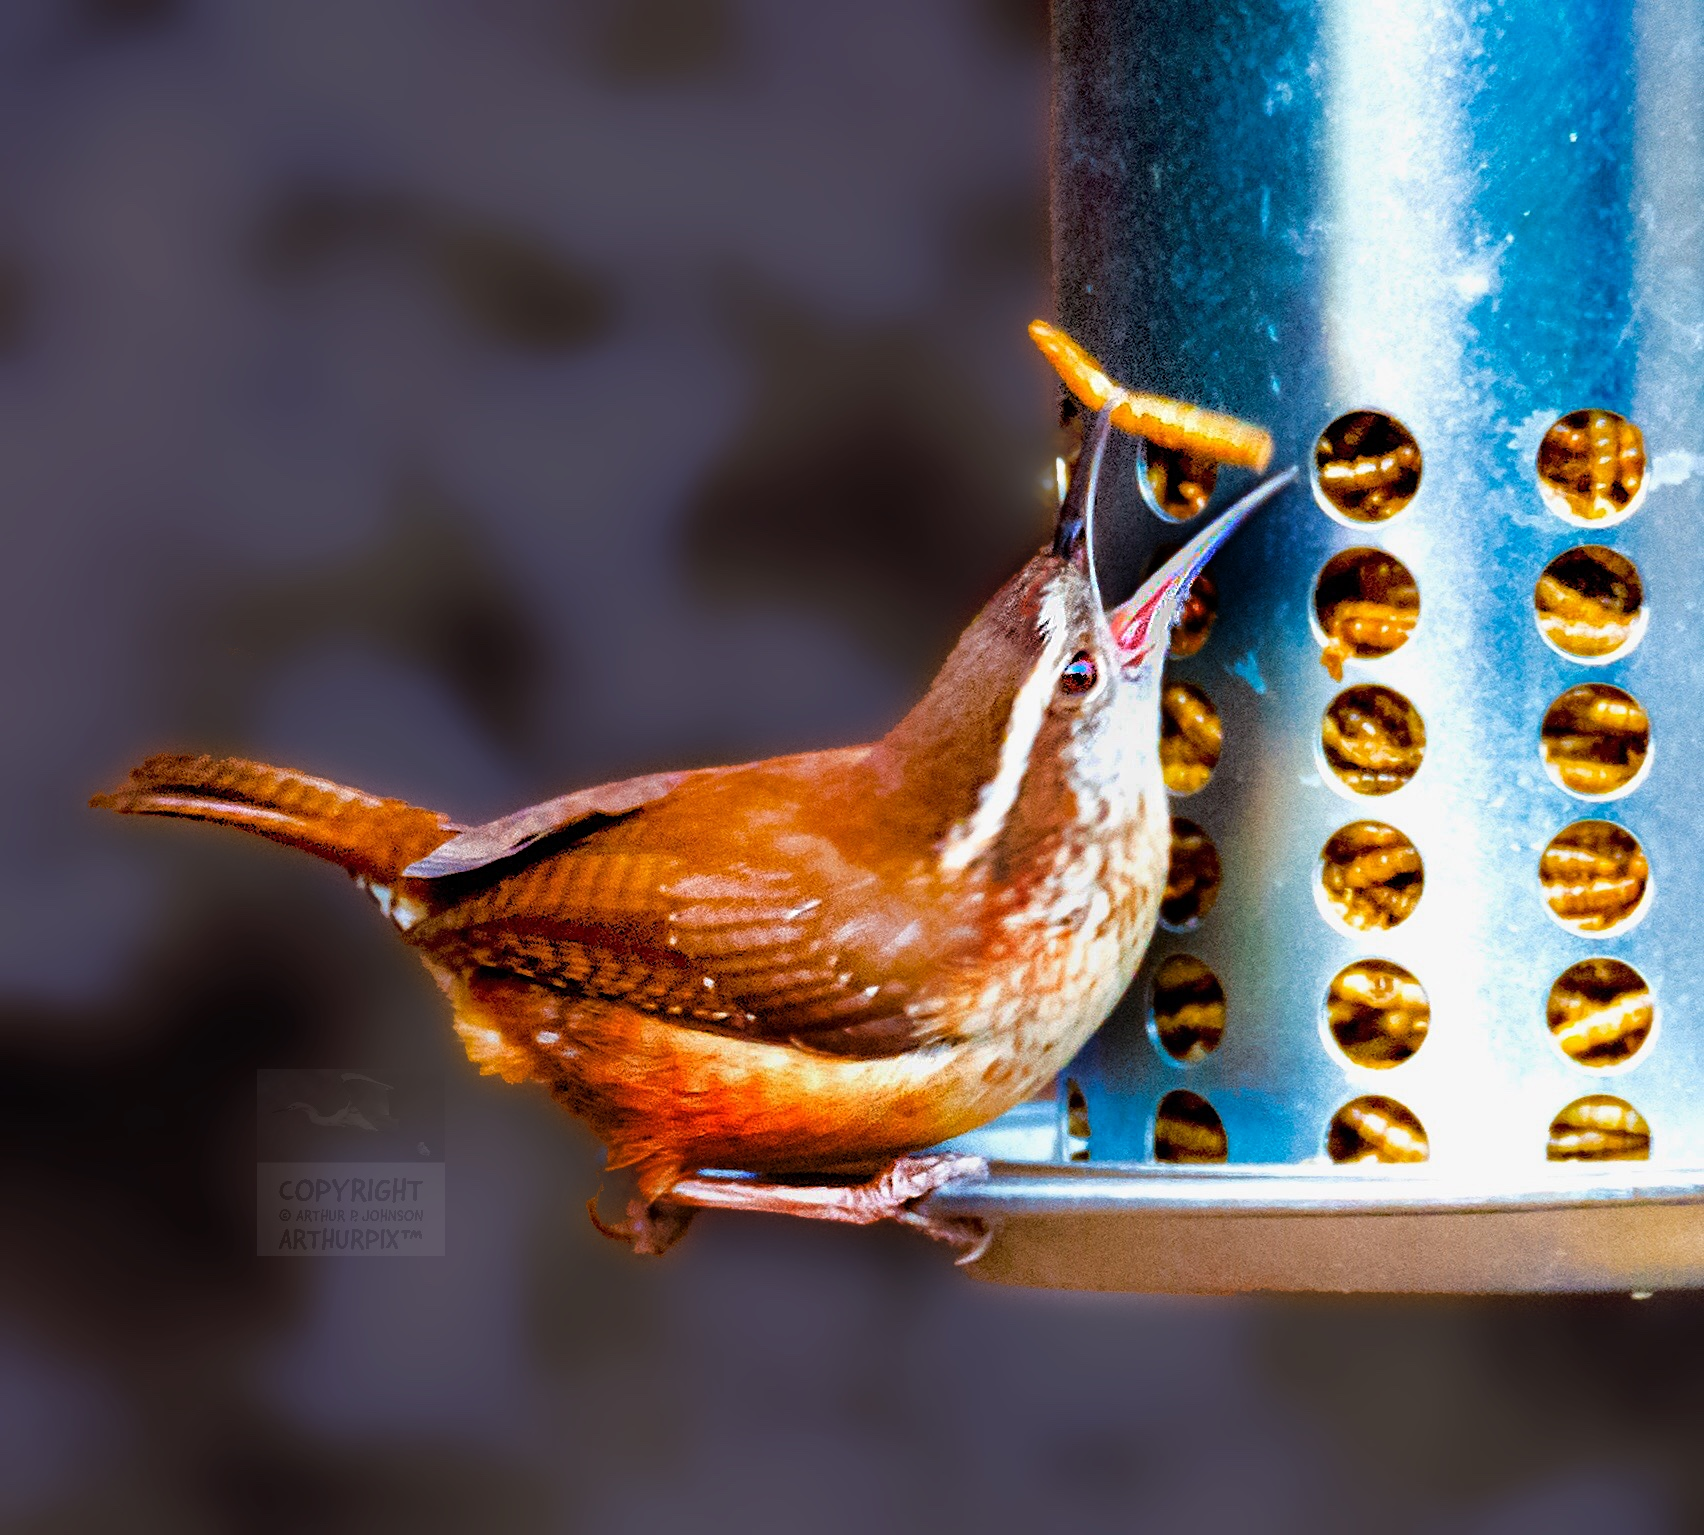 Carolina Wren eating mealworm